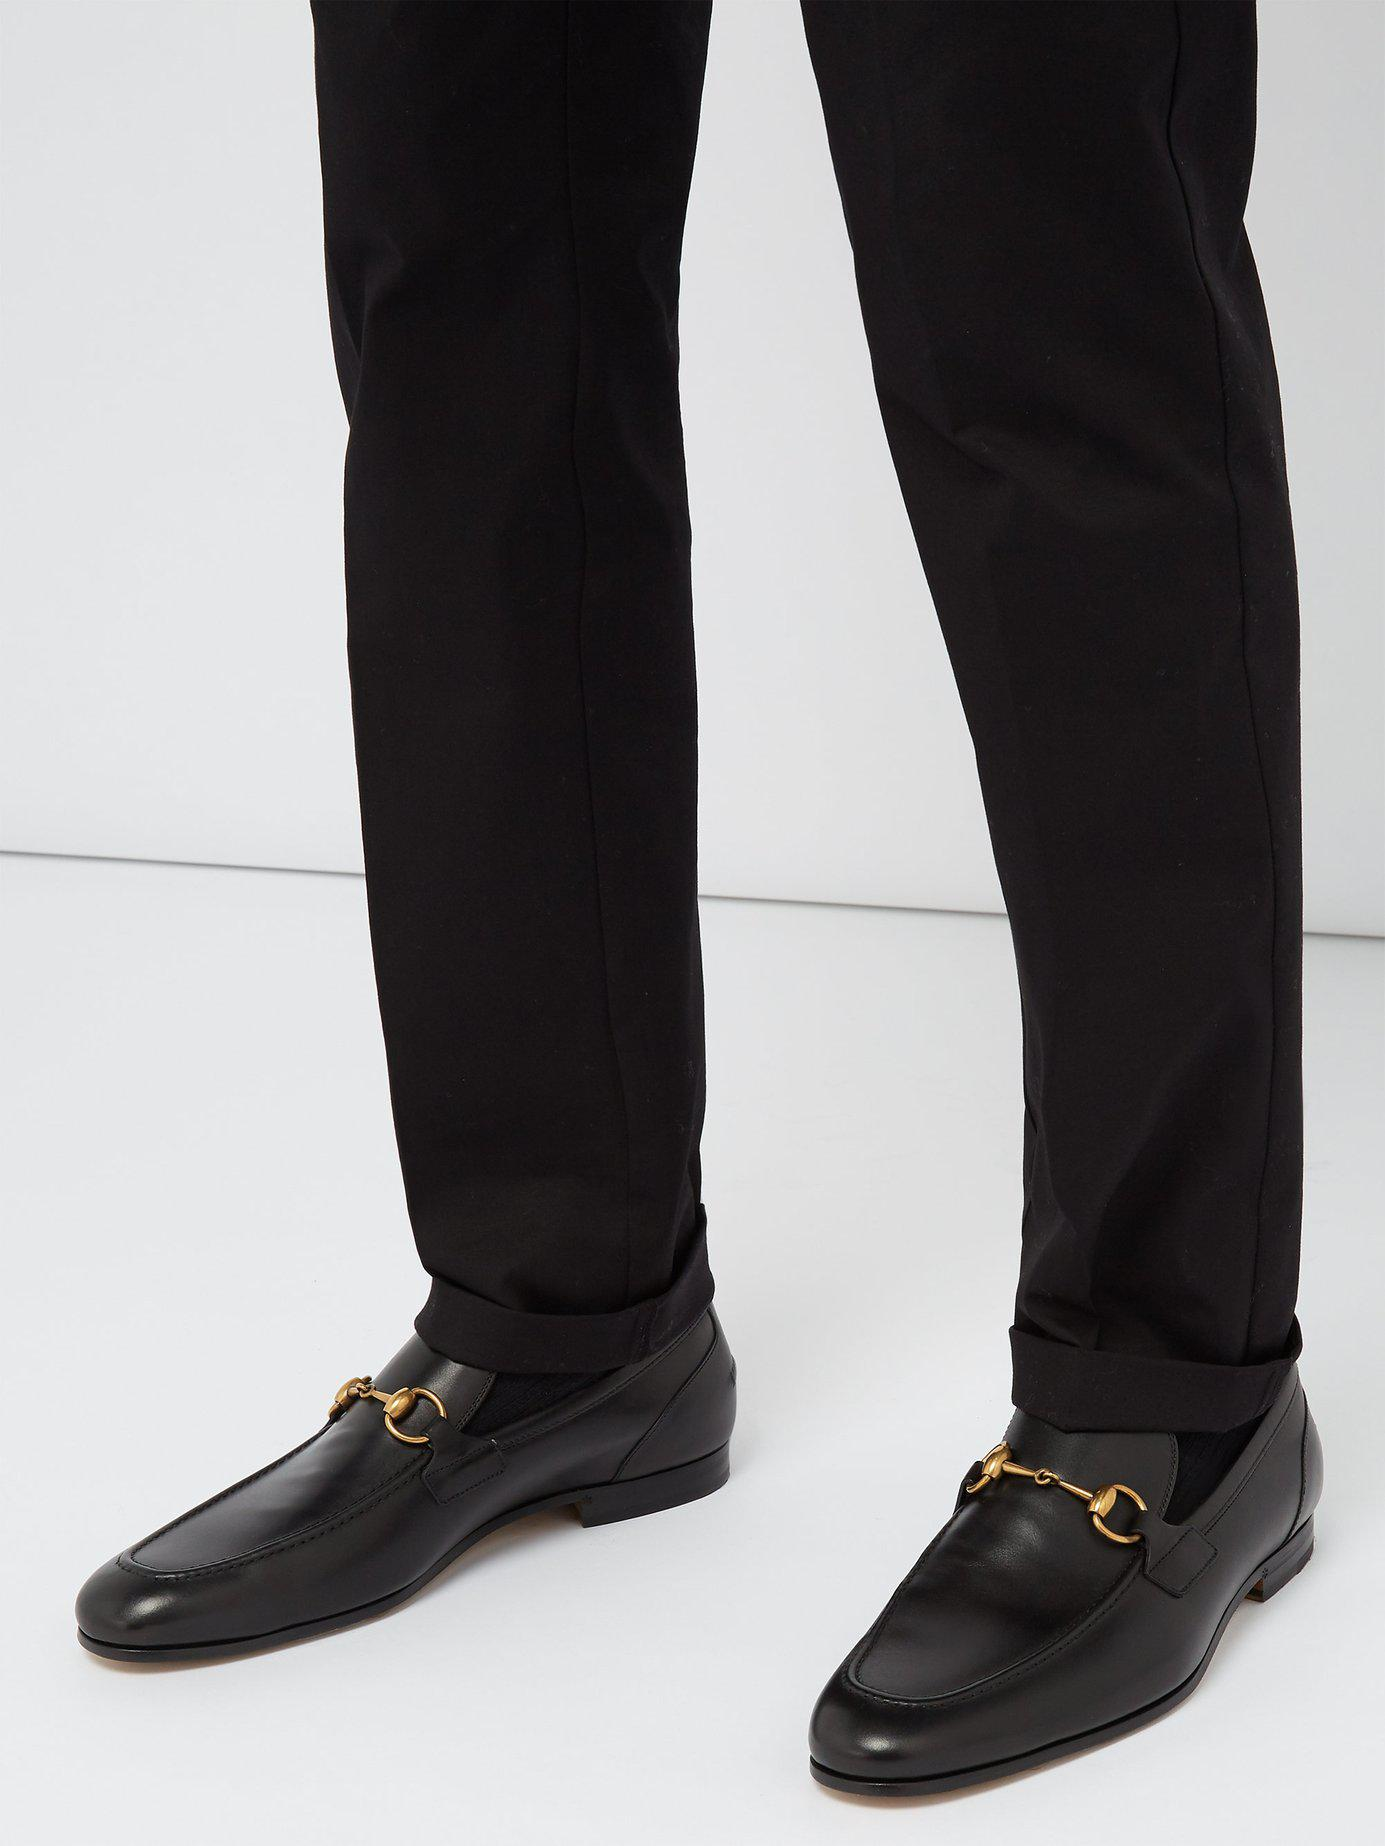 5586ffbdff65 Lyst - Gucci Jordaan Leather Loafers in Black for Men